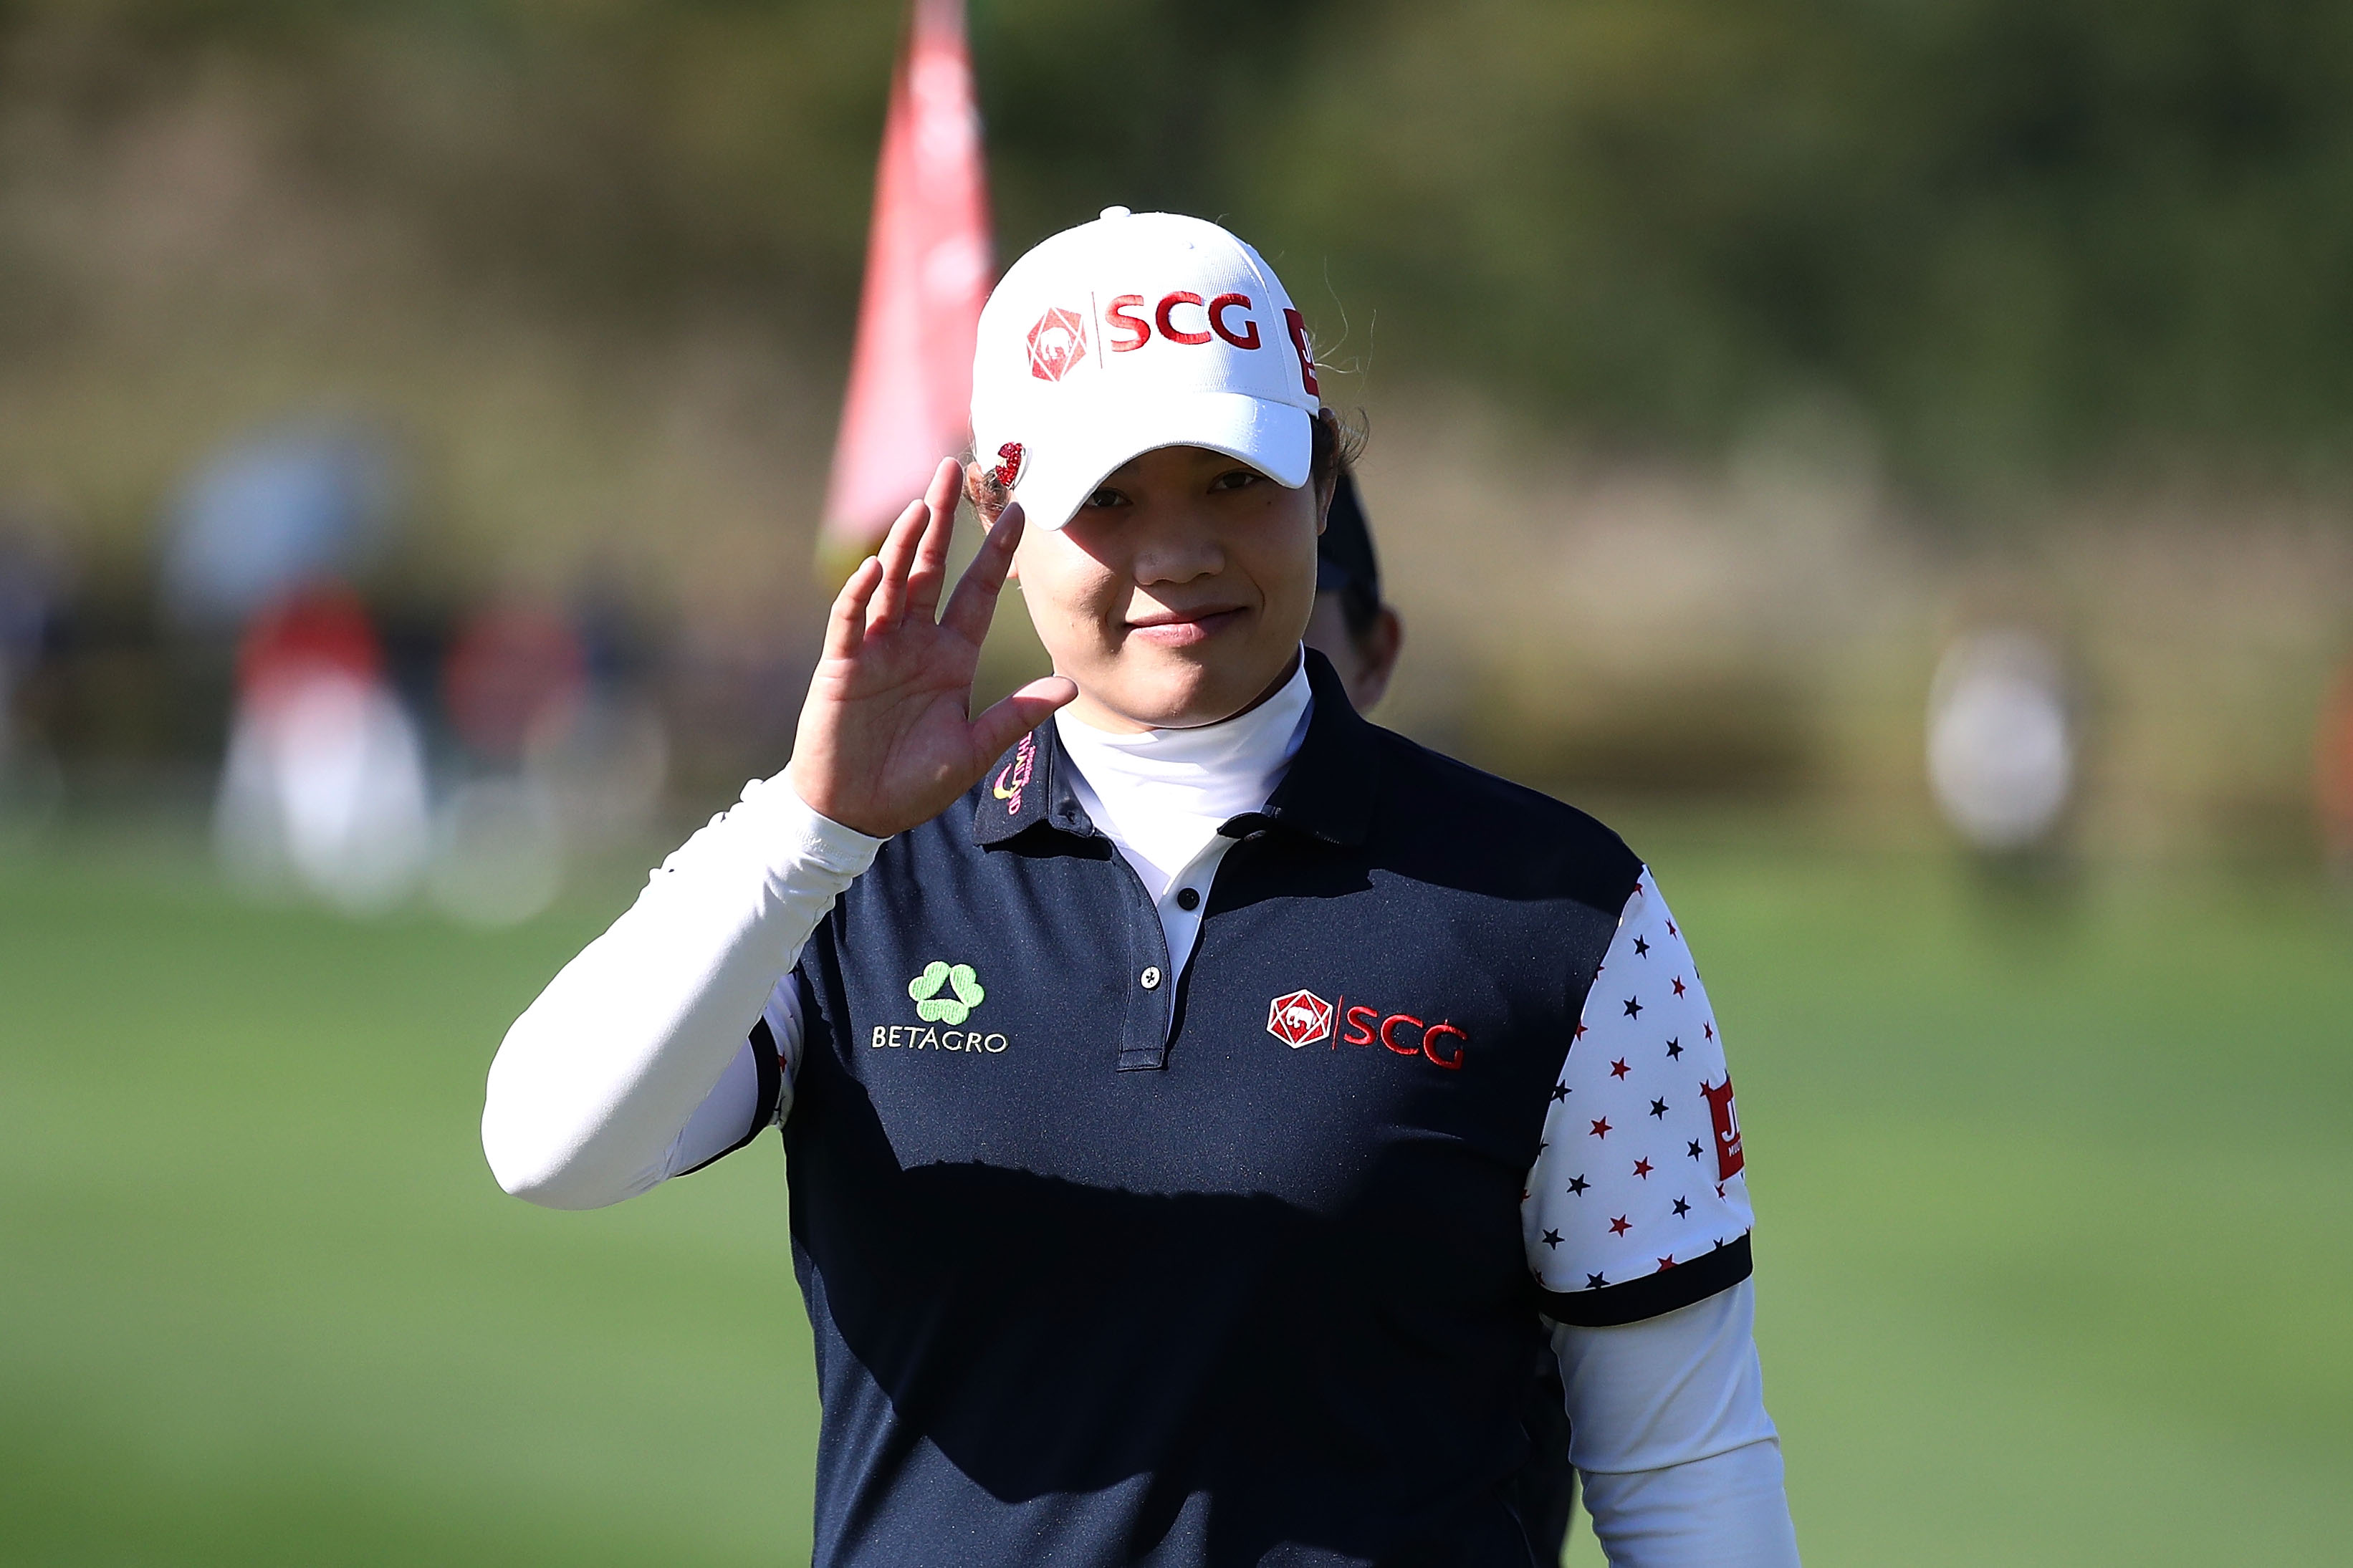 INCHEON, SOUTH KOREA - OCTOBER 12: Ariya Jutanugarn of Thailand on the 18th green during the second round of the LPGA KEB Hana Bank Championship at Sky 72 Golf Club on October 12, 2018 in Incheon, South Korea. (Photo by Chung Sung-Jun/Getty Images)